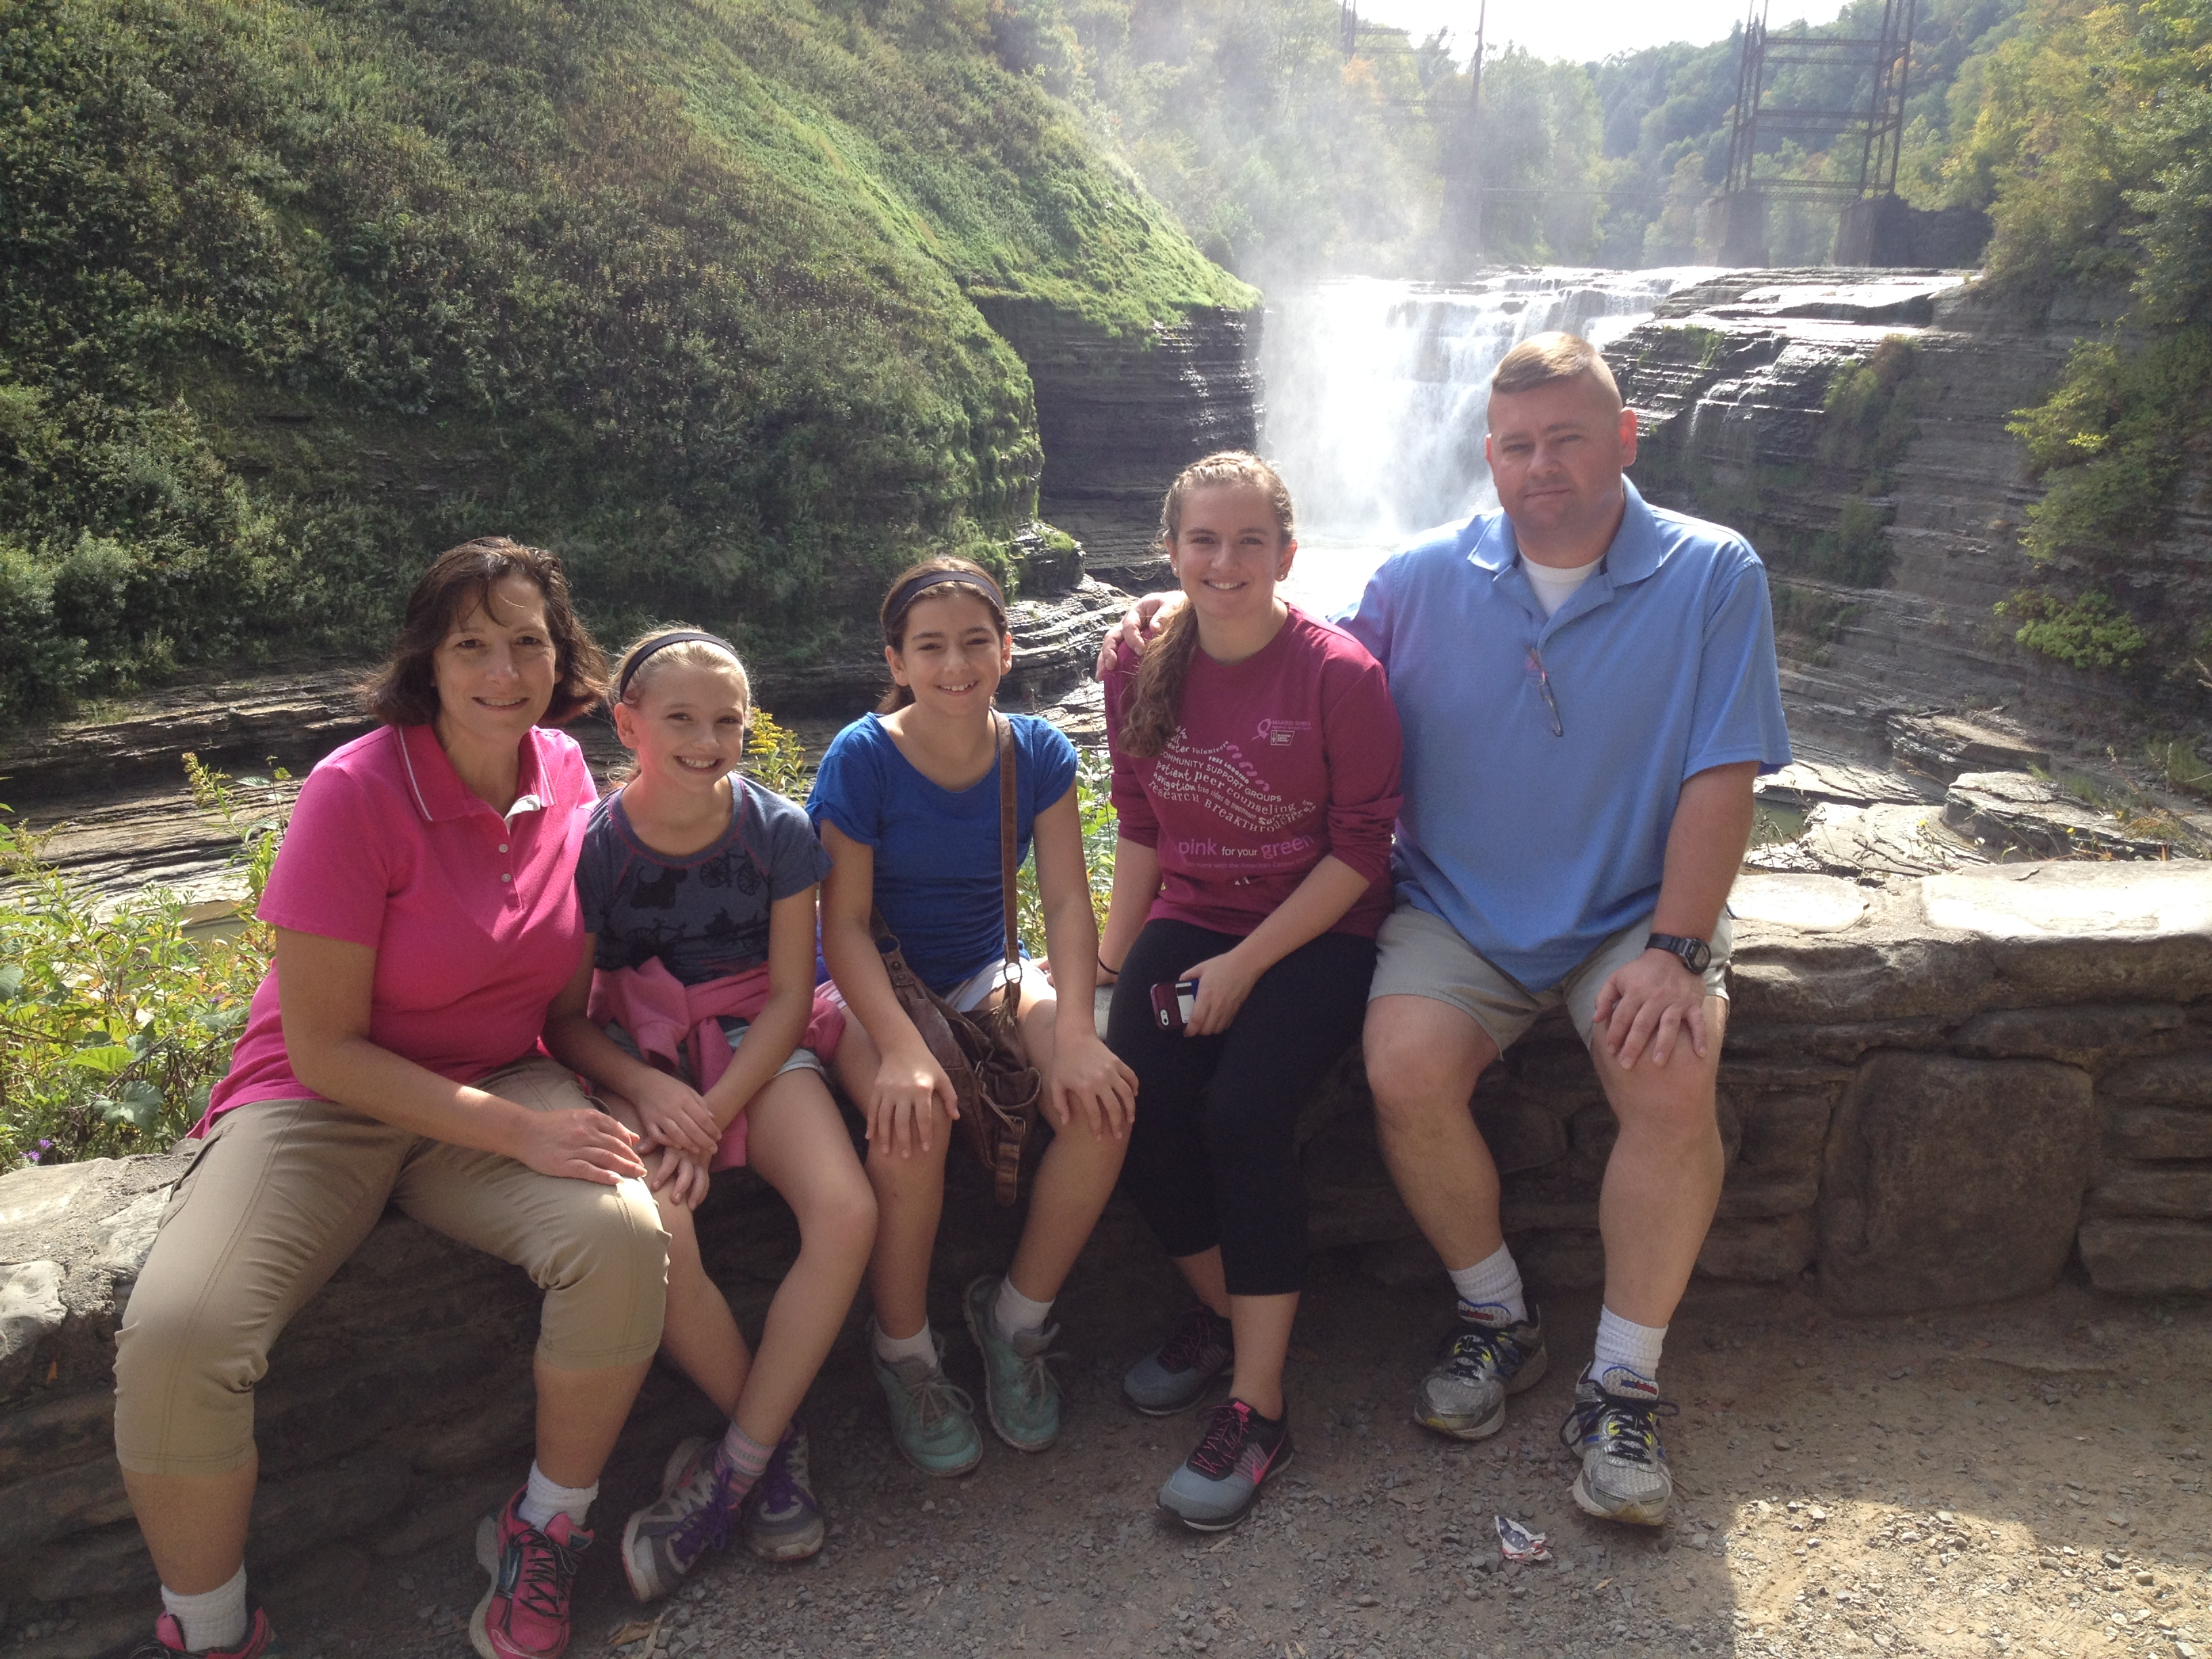 Jim Reeves, right, with, from left, Terri, Olivia, Cloe and Emily Reeves last year at Letchworth State Park.